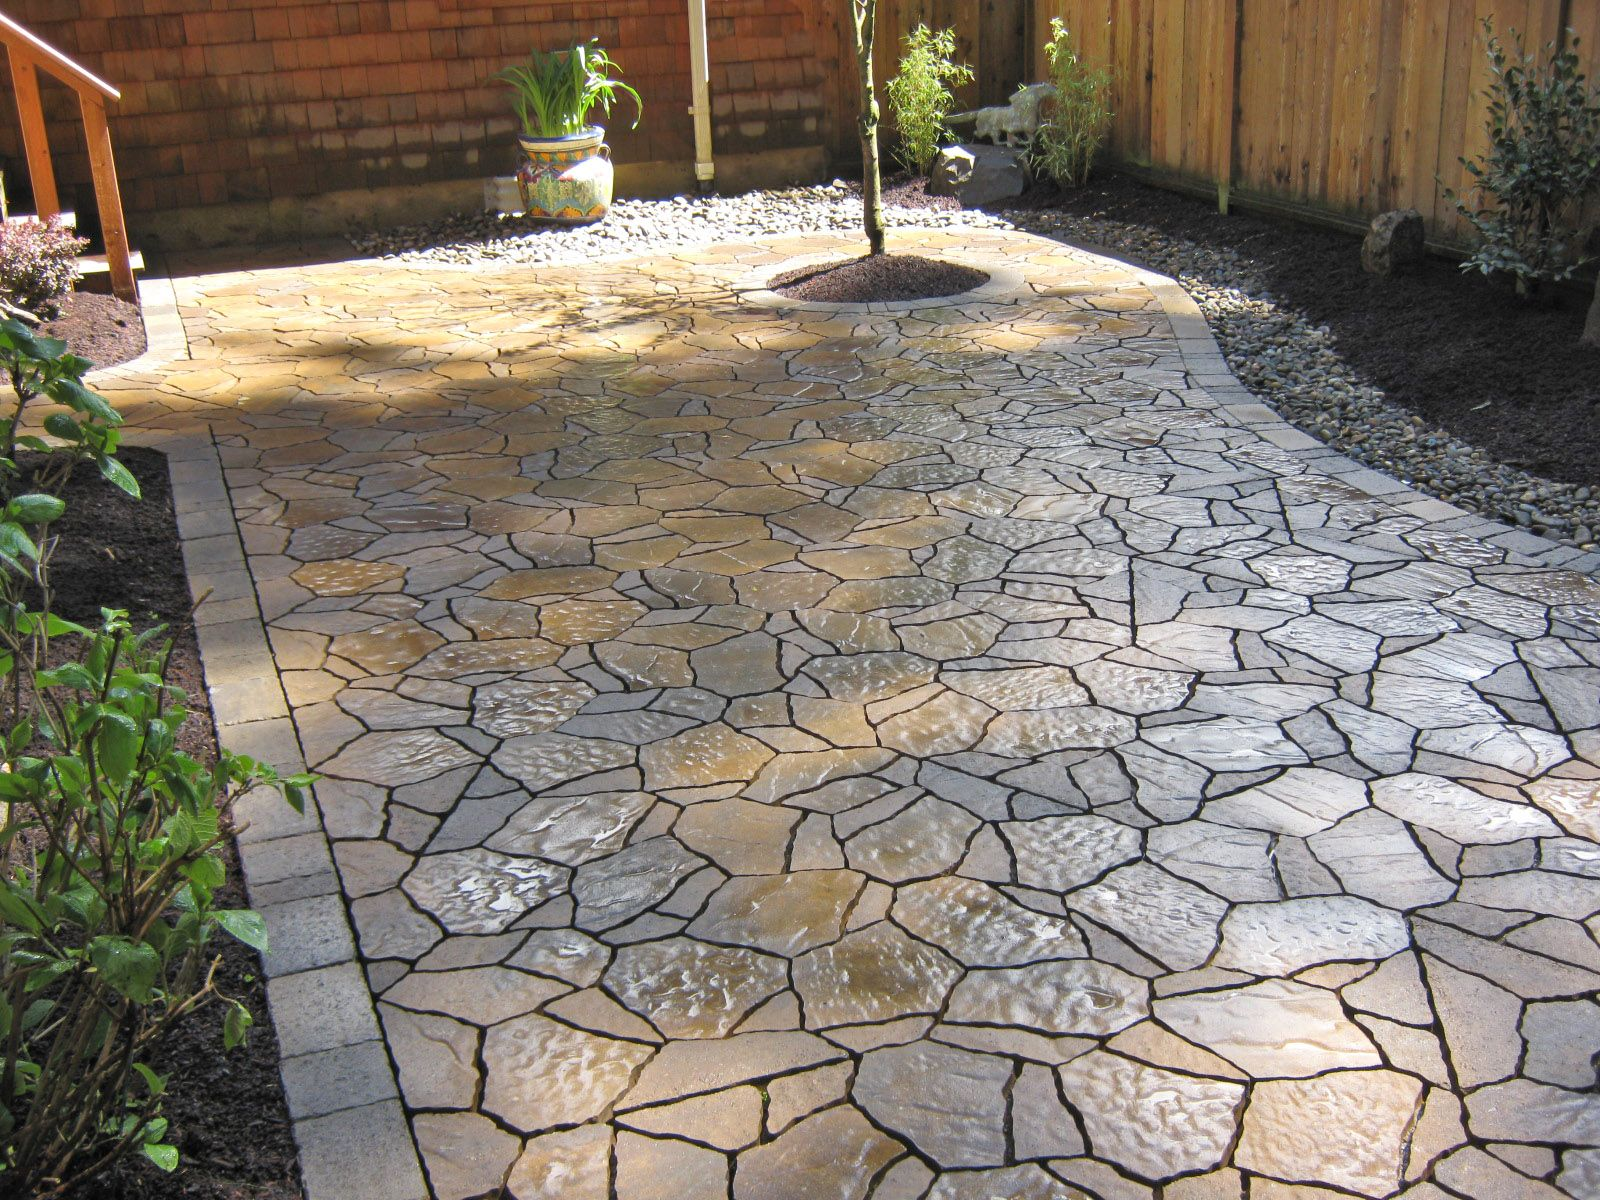 Stone patio ideas landscape archives dennis 39 7 dees for Paving designs for small garden path